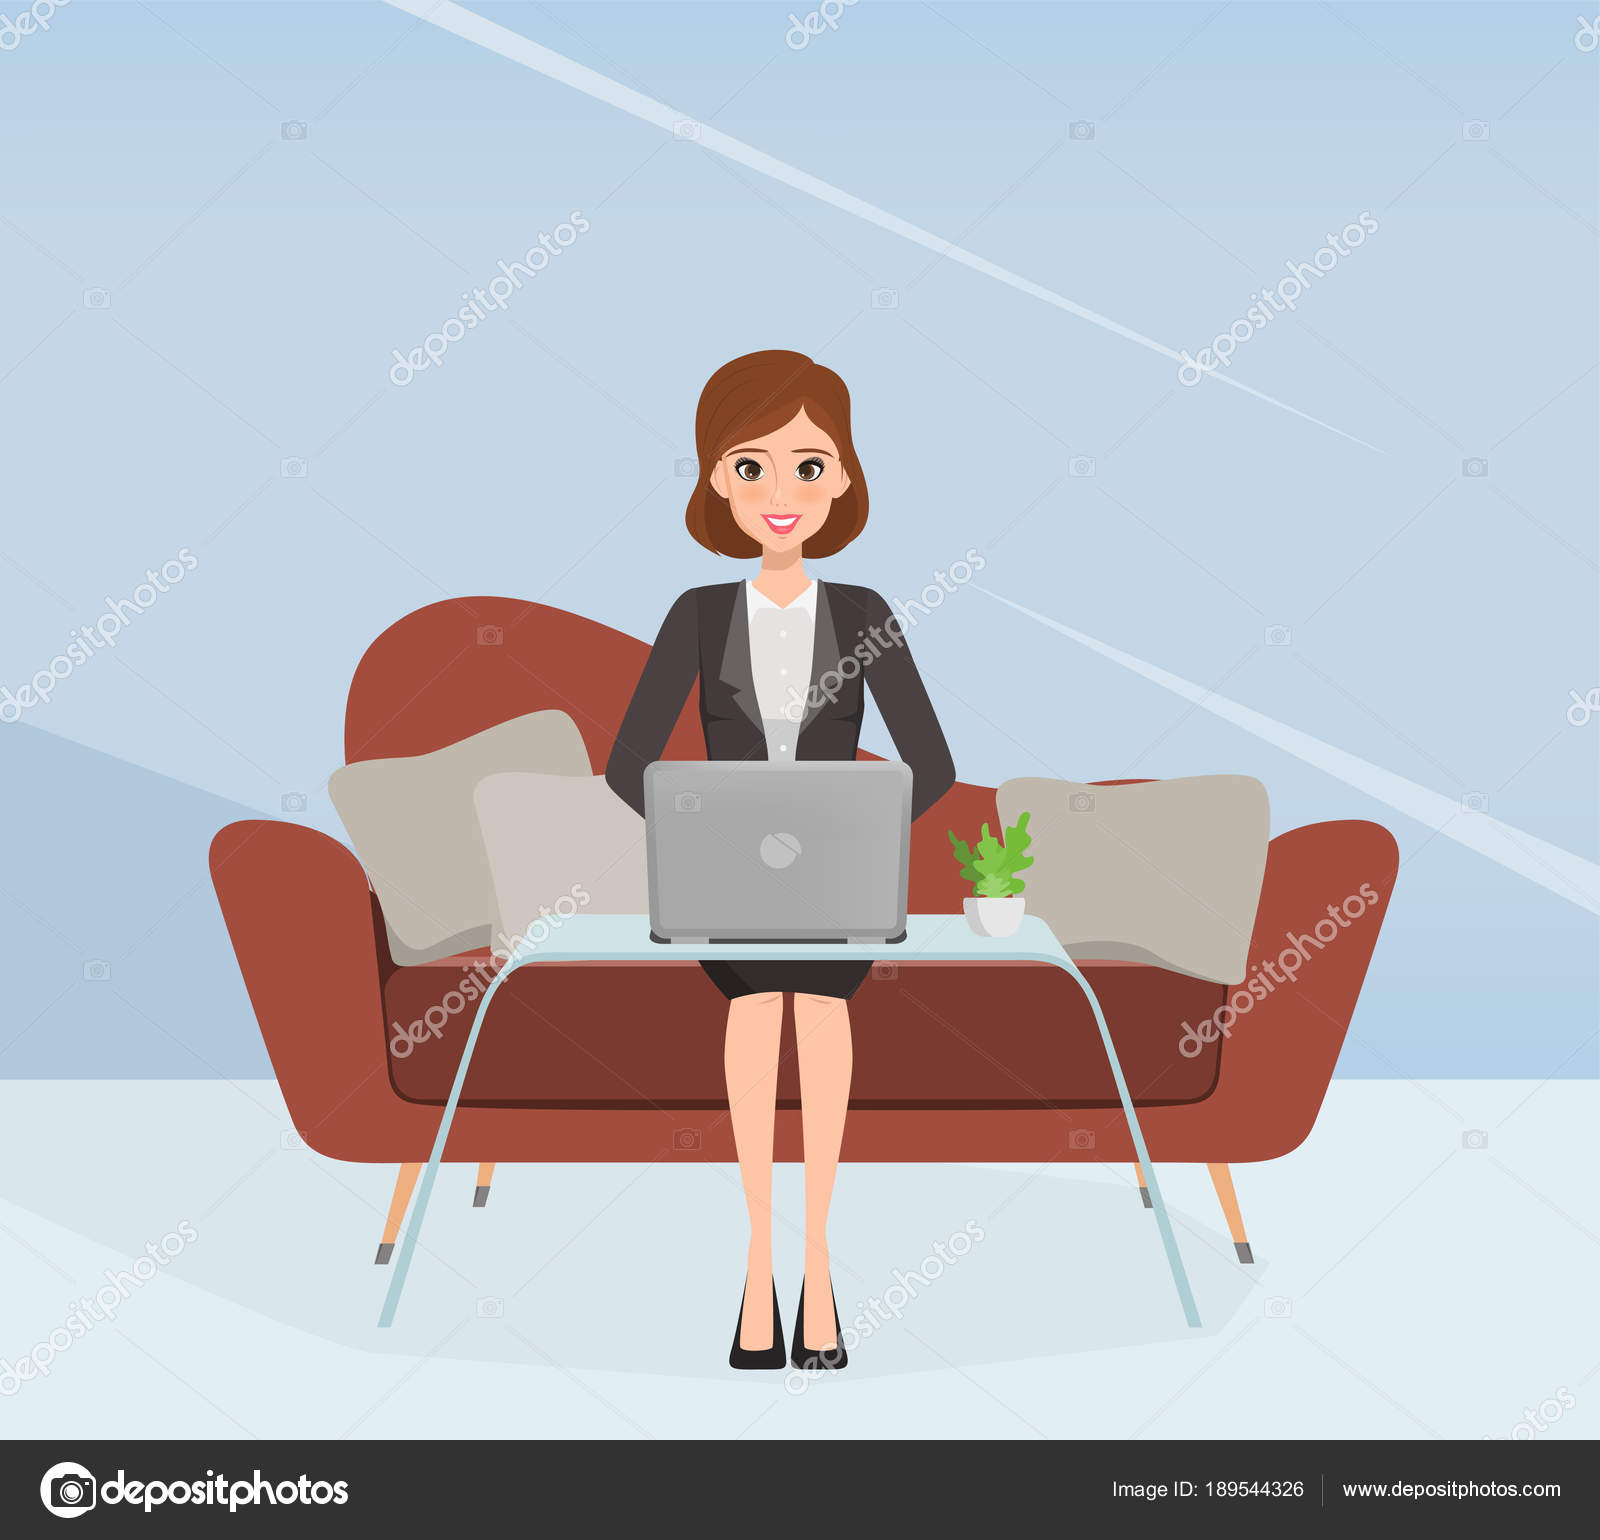 Character Of Business Woman In Suit Sitting On Sofa And Using A Laptop. U2014  Stock